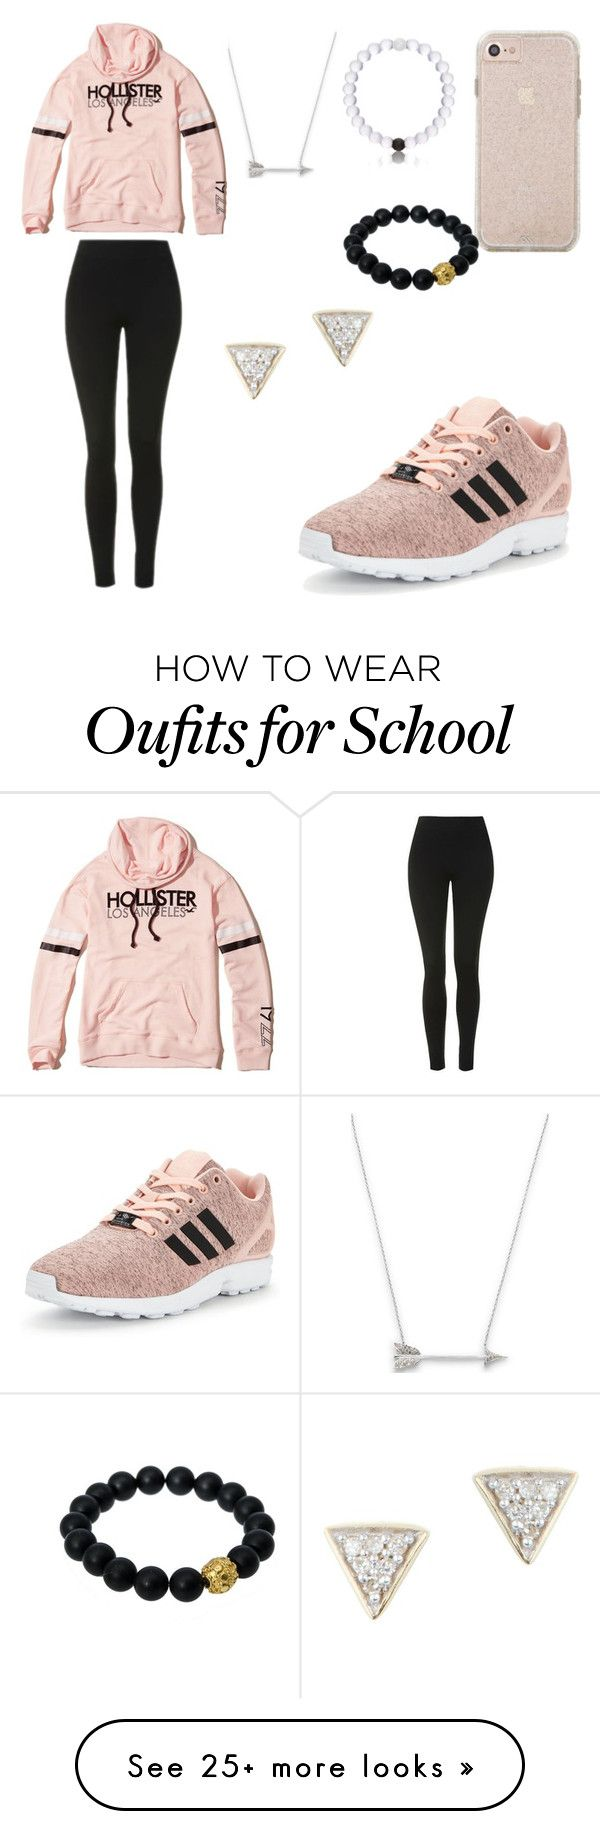 HIGH SCHOOL STYLE by mgarcia-iii on Polyvore featuring Estella Bartlett, Berluti, Adina Reyter, adidas Originals, Hollister Co. and Topshop ,Adidas Shoes Online,#adidas #shoes